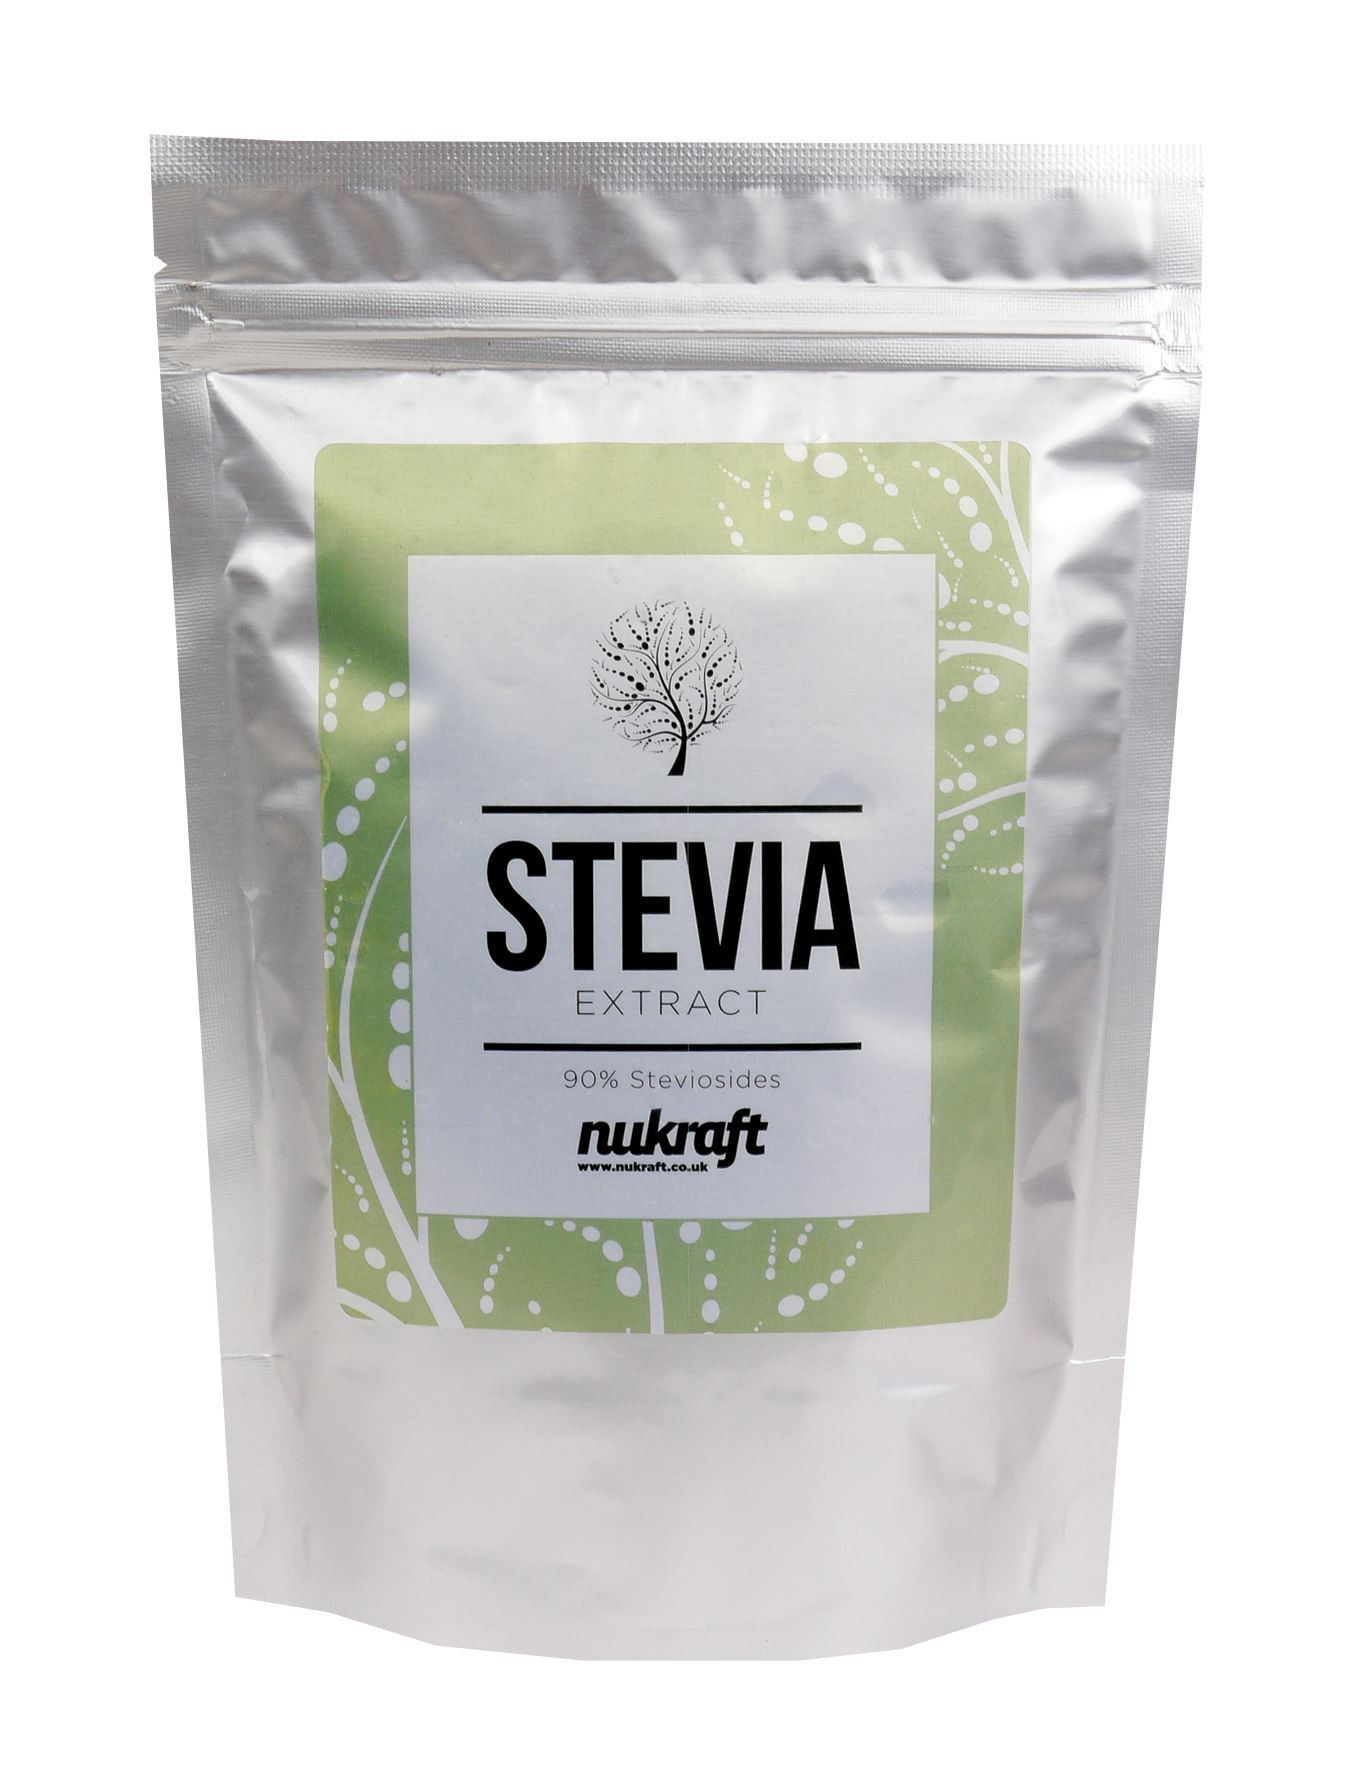 1kg stevia pure extract powder 90 steviosides sweetener pharma grade ebay. Black Bedroom Furniture Sets. Home Design Ideas